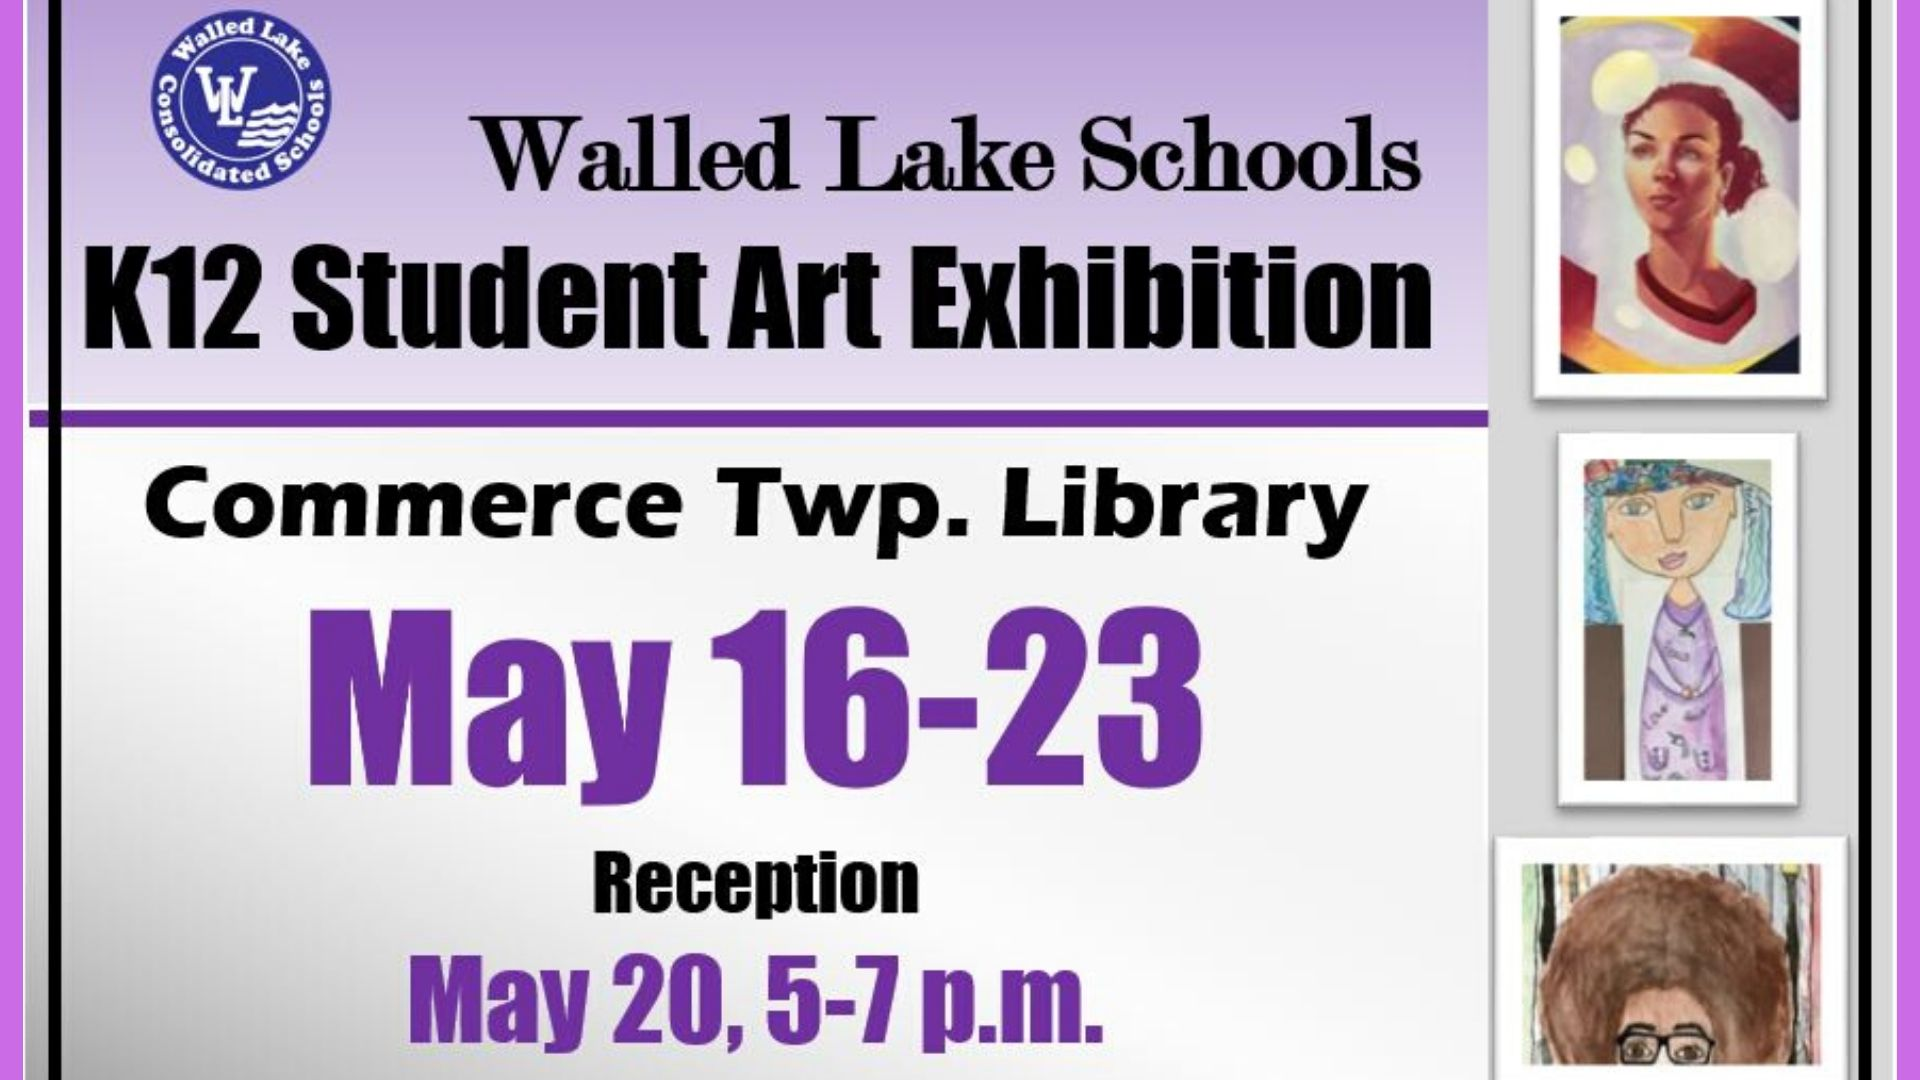 student art exhibition May 16-24 reception May 20 5-7 p.m.